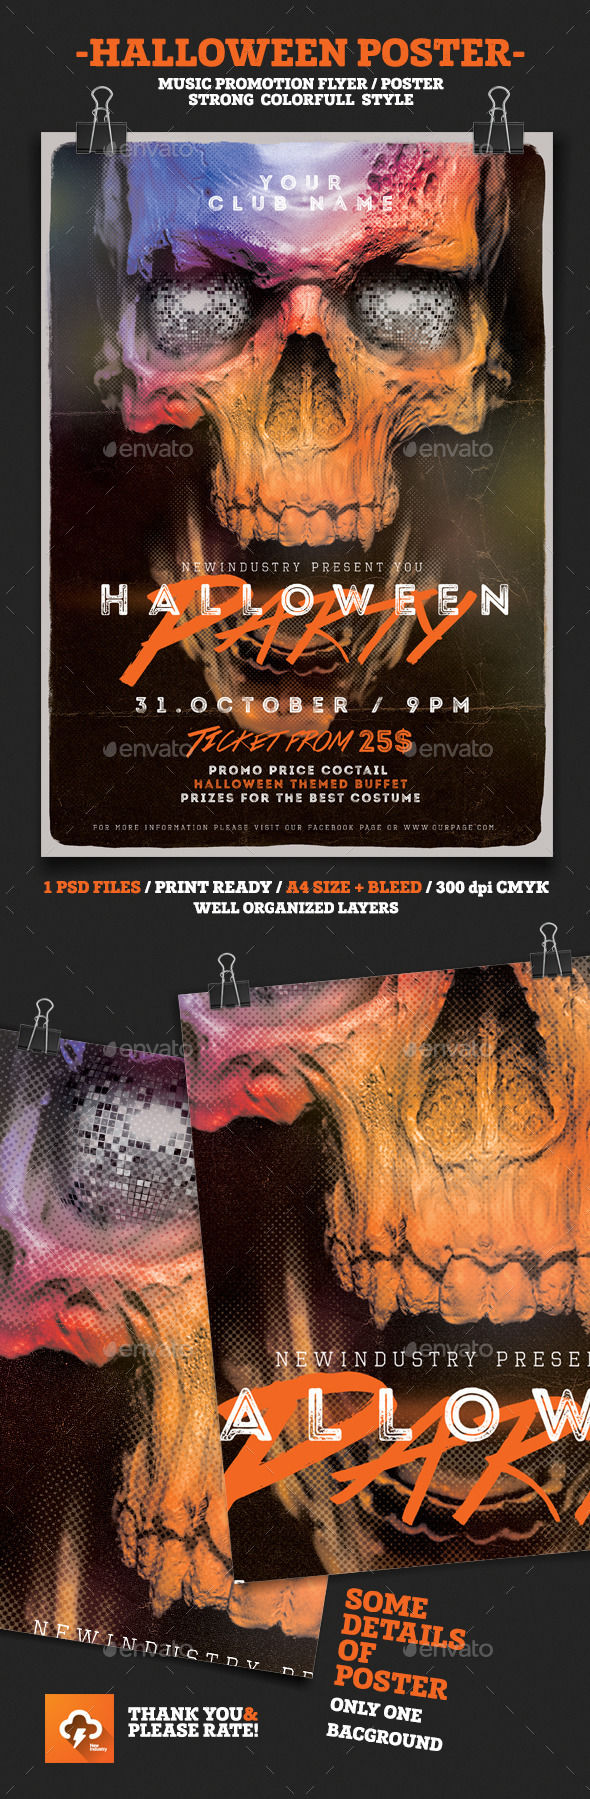 Halloween House Party by NewIndustry (Halloween party flyer)